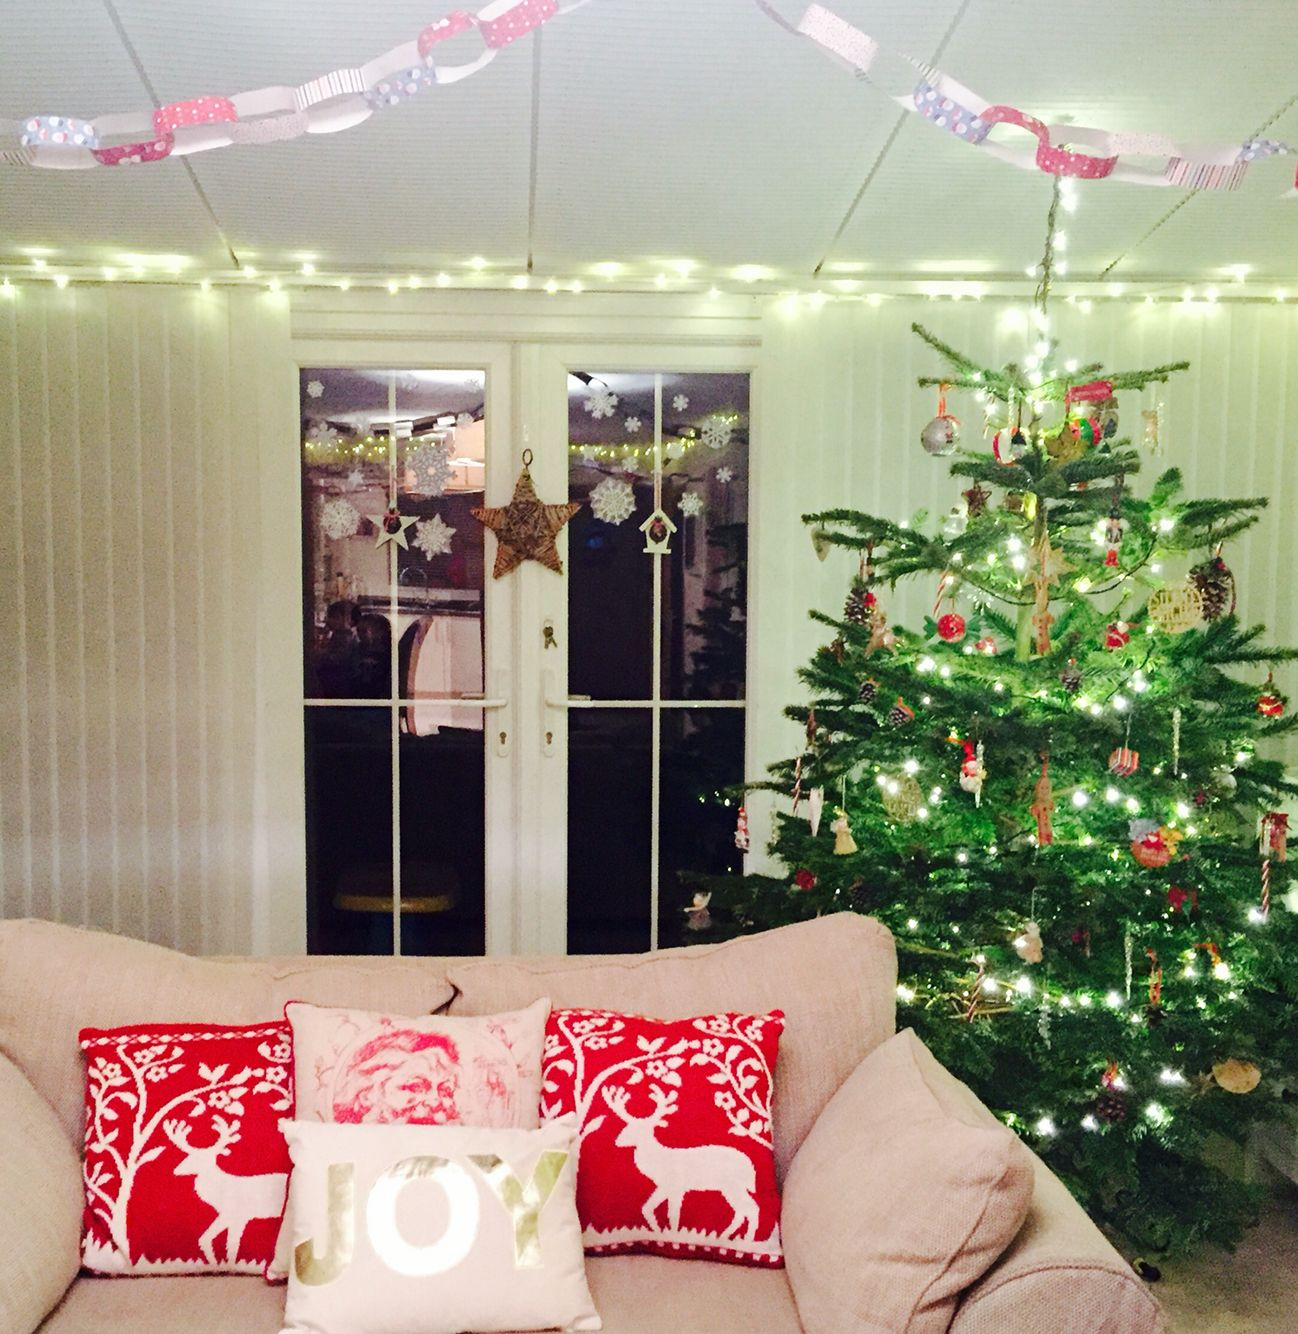 It's beginning to look a lot like Christmas in our house now. Christmas tree style? Lived in with kids - red & gold. Starting to love my lil collection of Christmas cushions